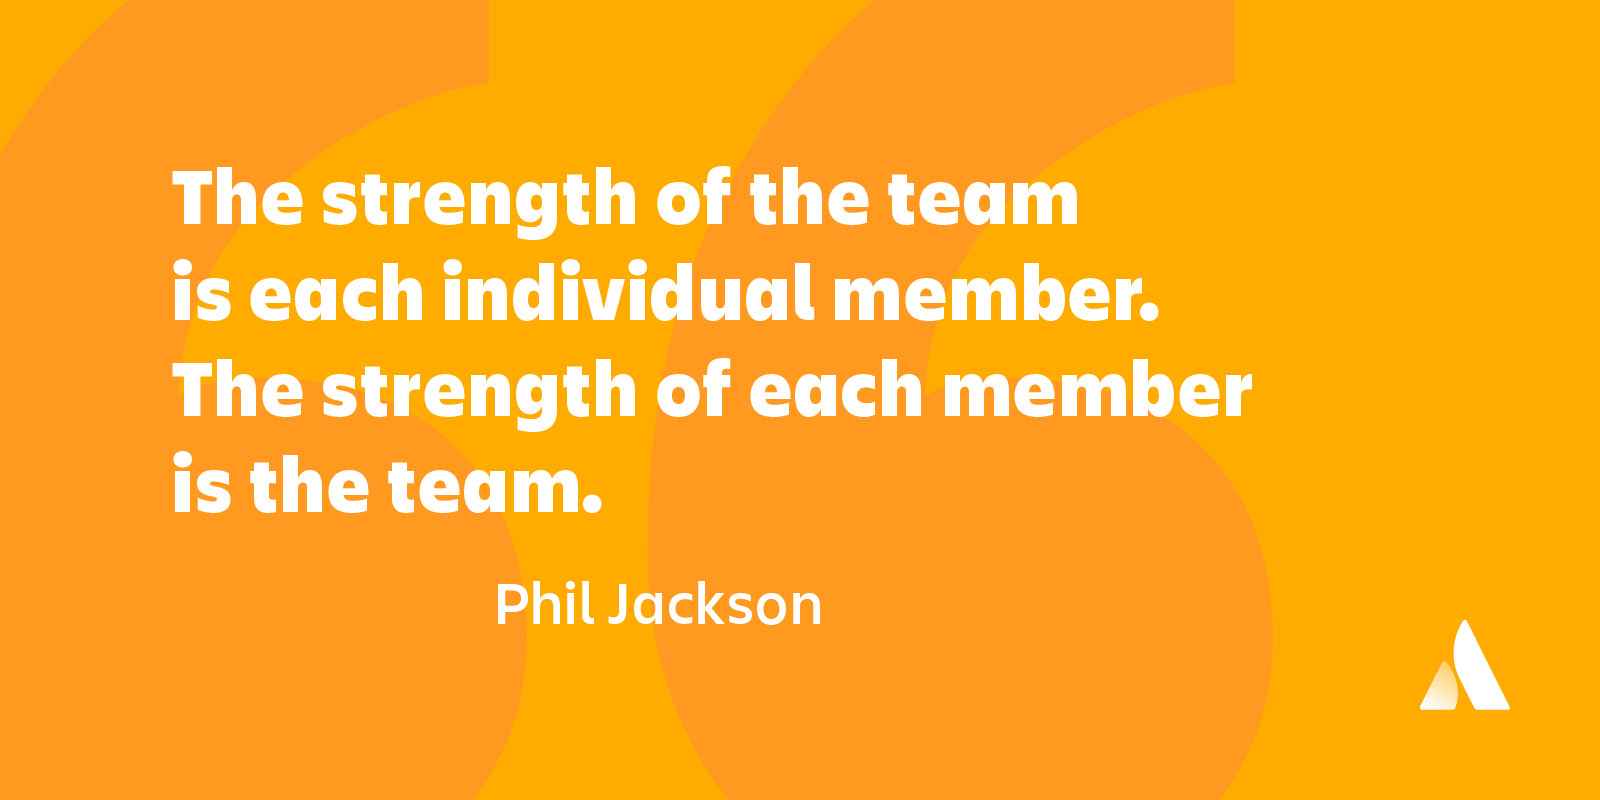 Motivational Quotes For Teams  18 non corny teamwork quotes you ll actually like Work